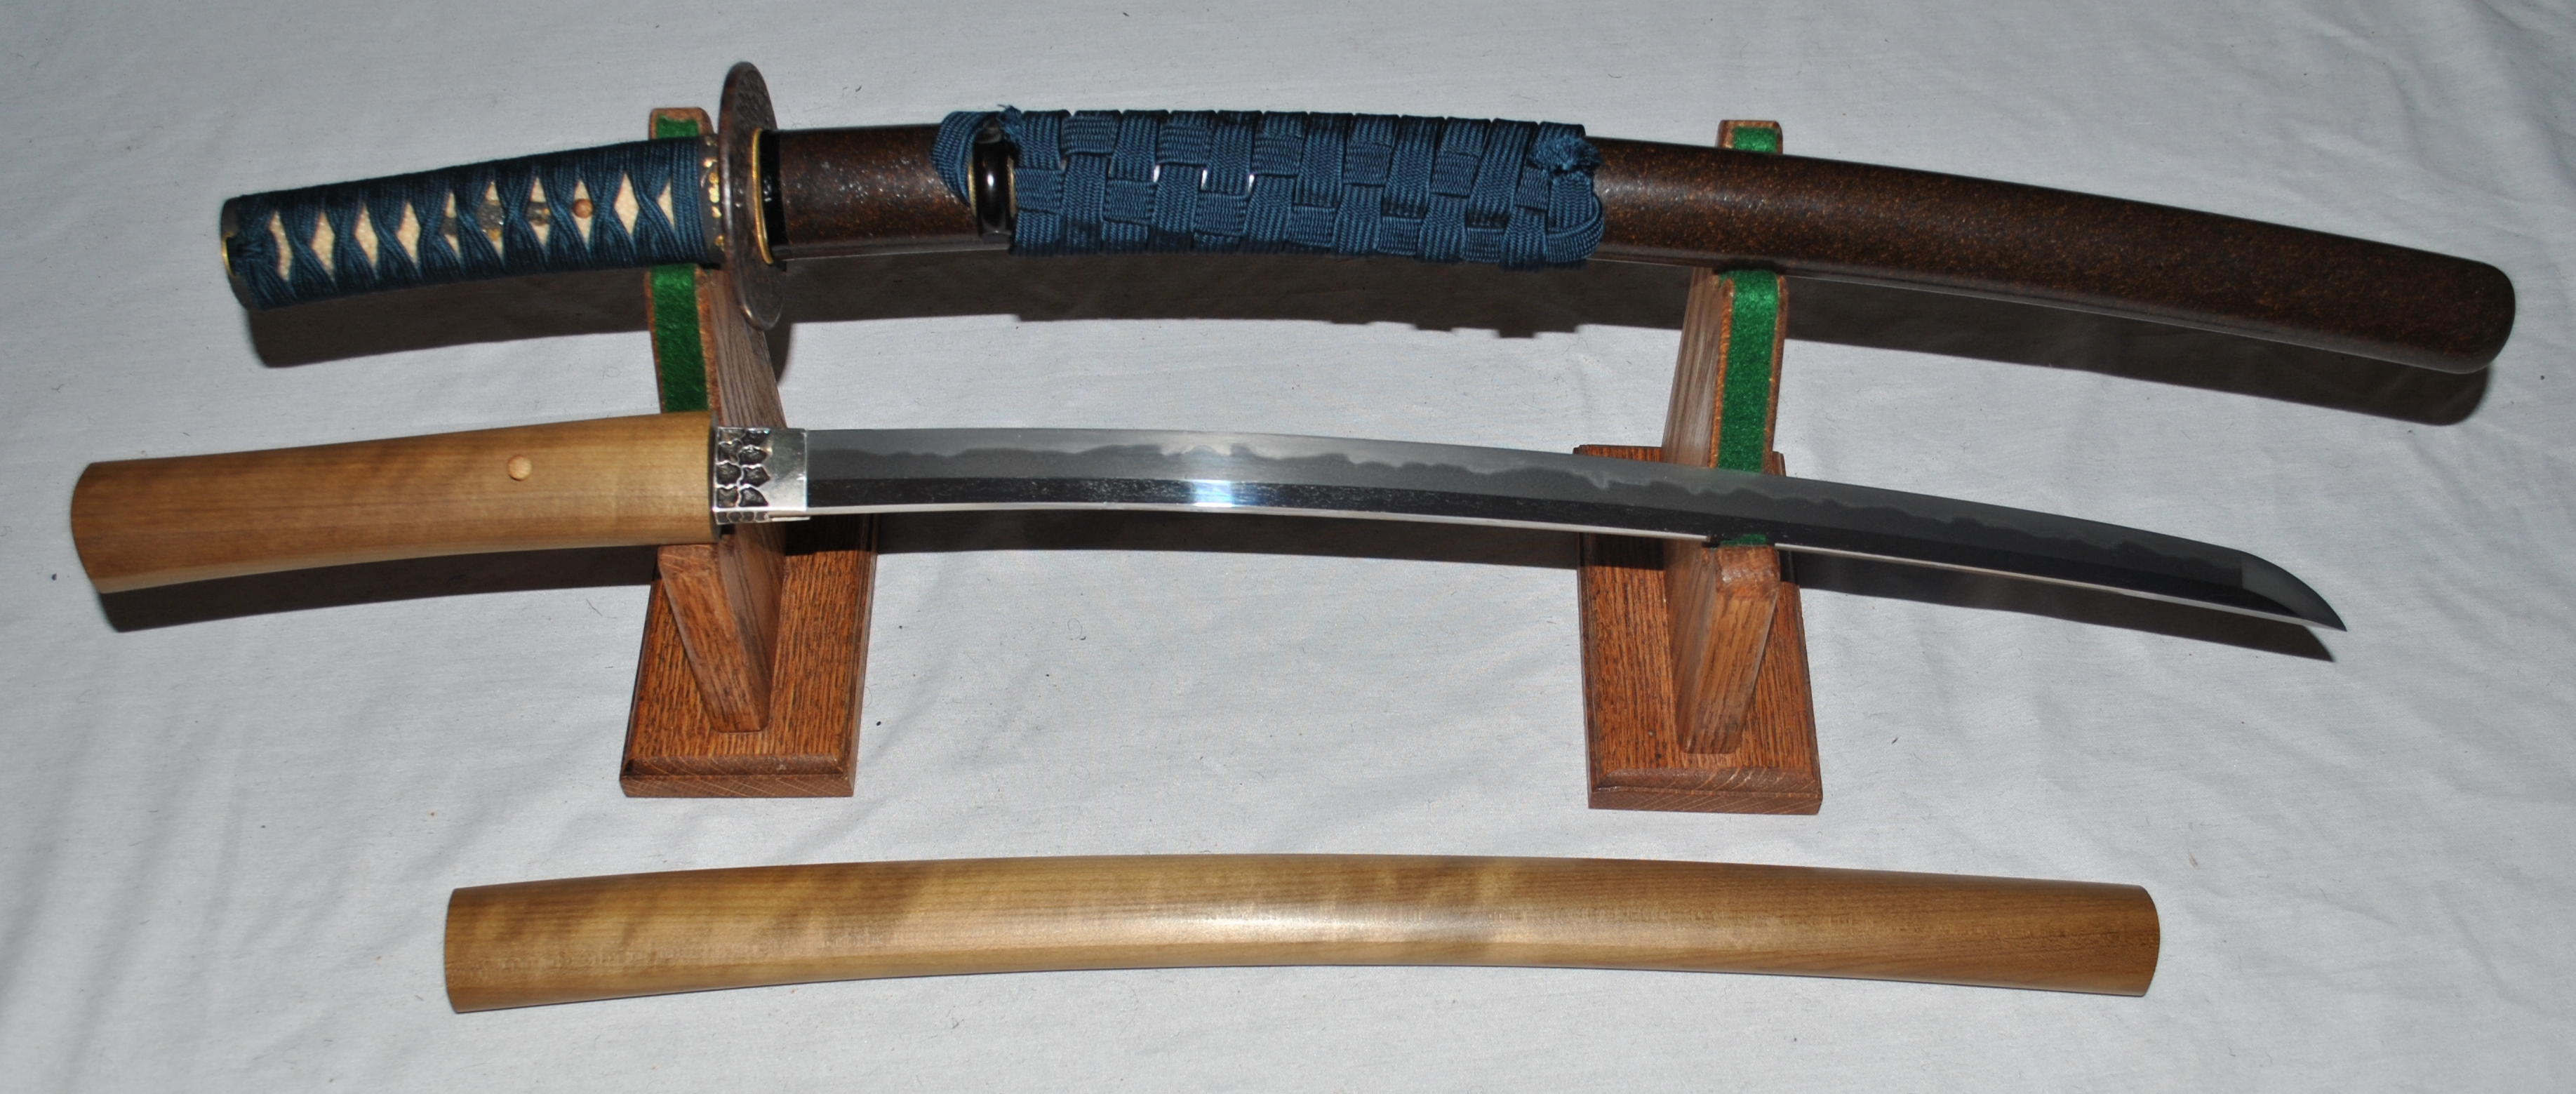 Wakizashi - Simple English Wikipedia, the free encyclopedia